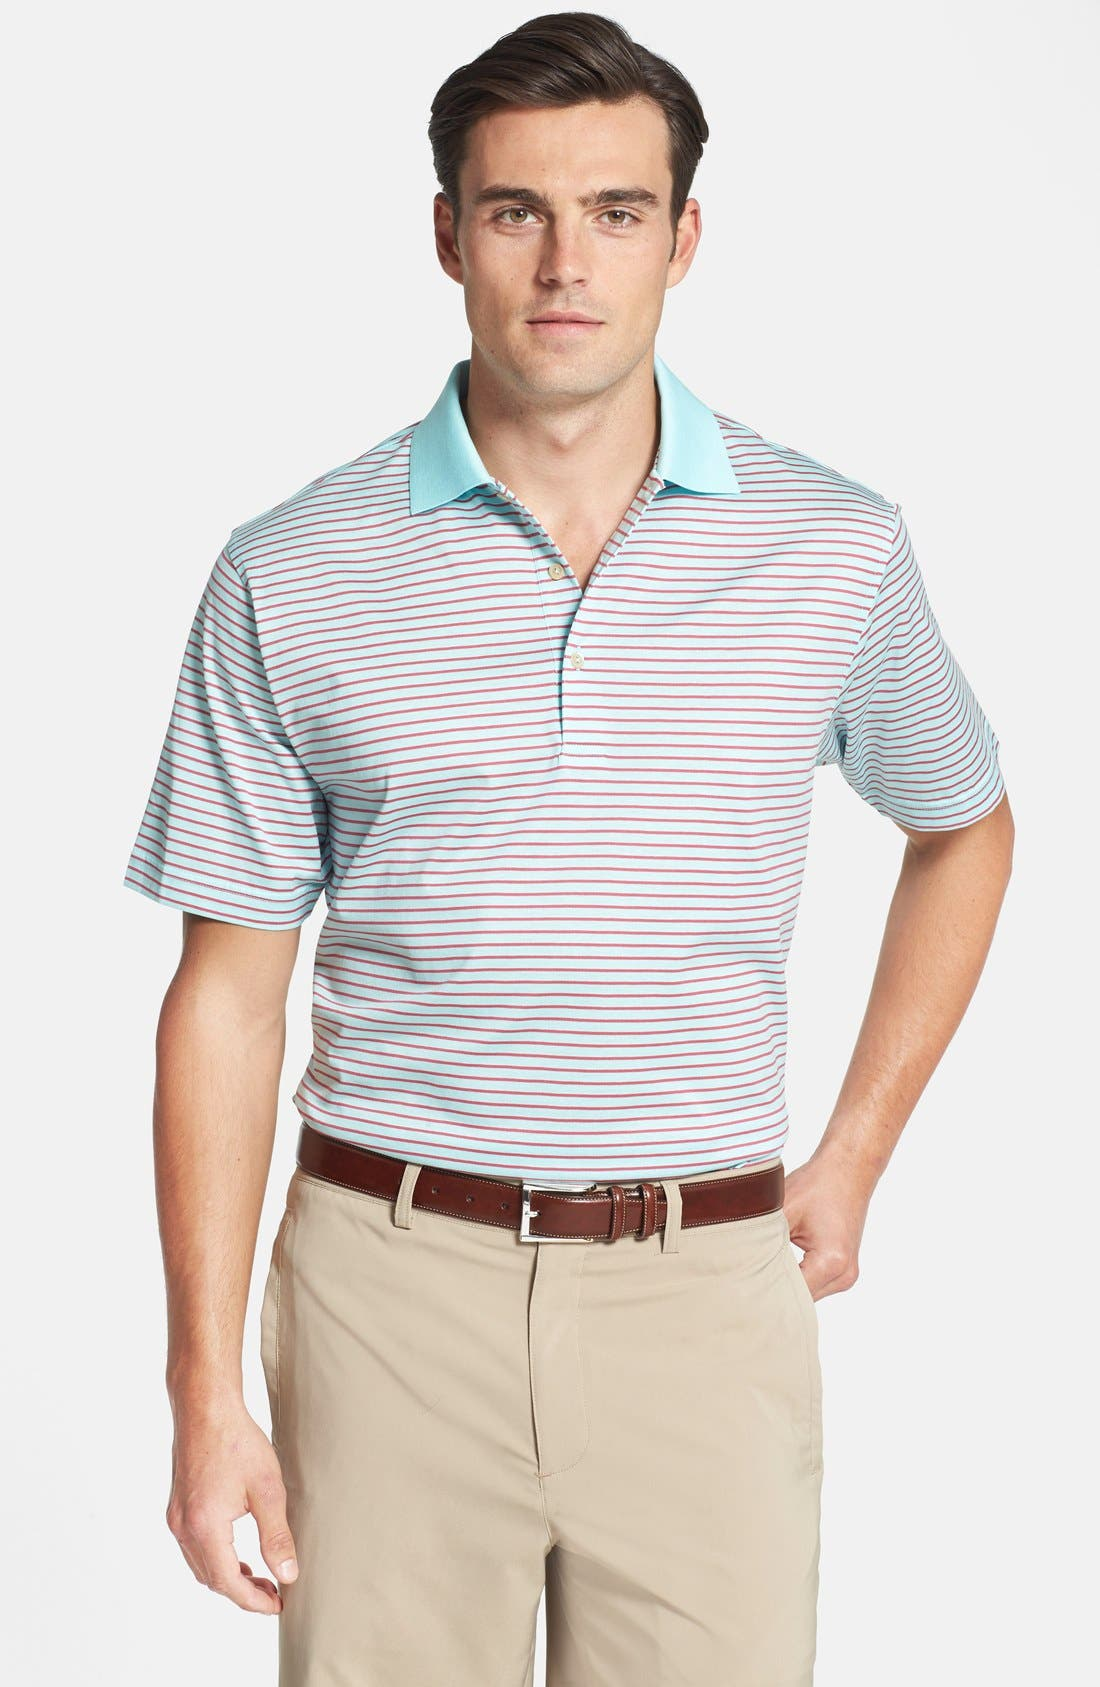 Main Image - Peter Millar 'Kilffman' Stripe Knit Polo